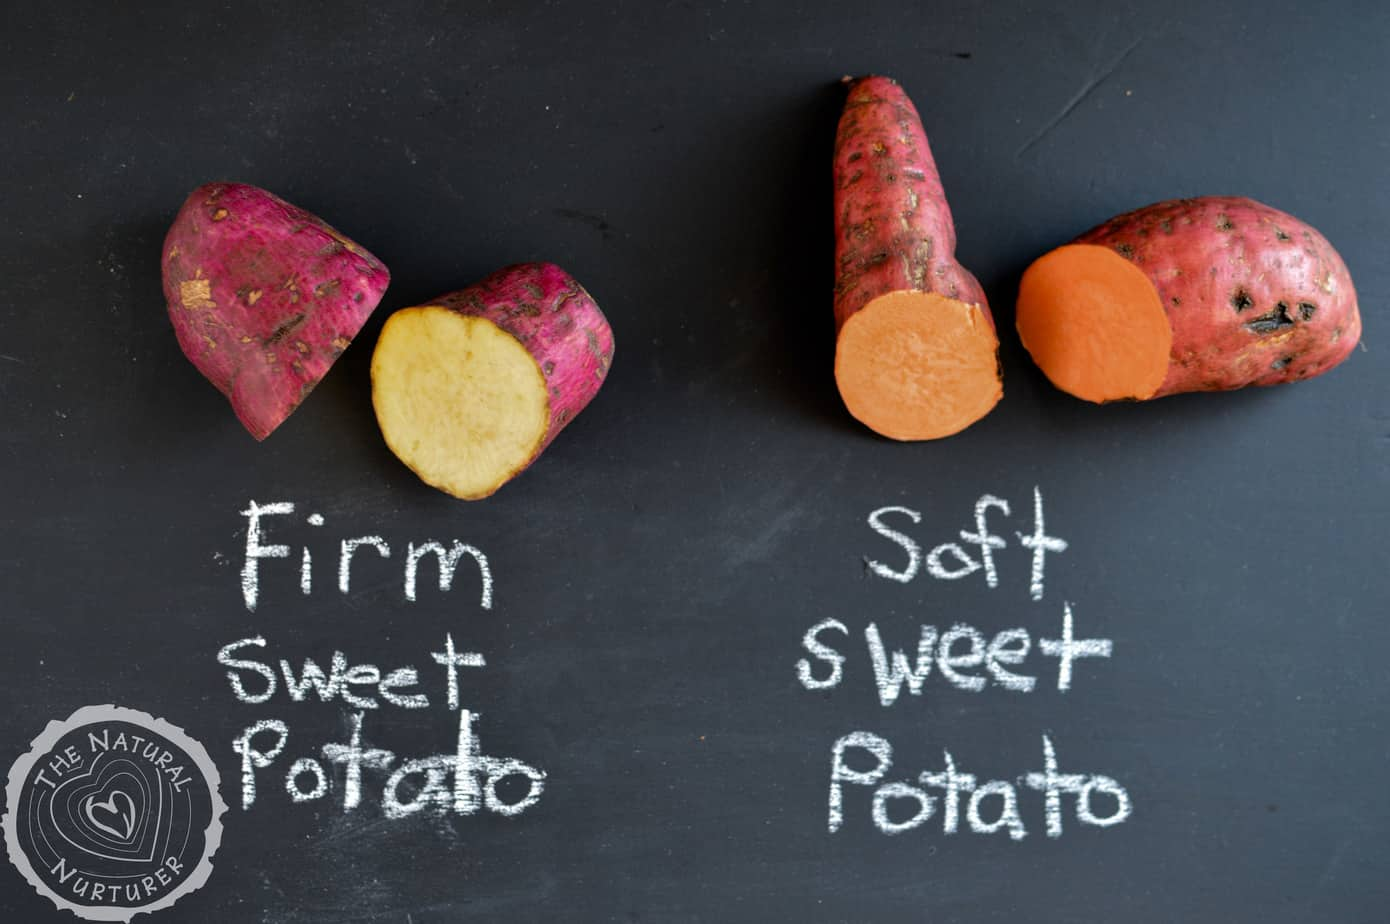 Baked Sweet Potato Fries with Homemade Ketchup - The Natural